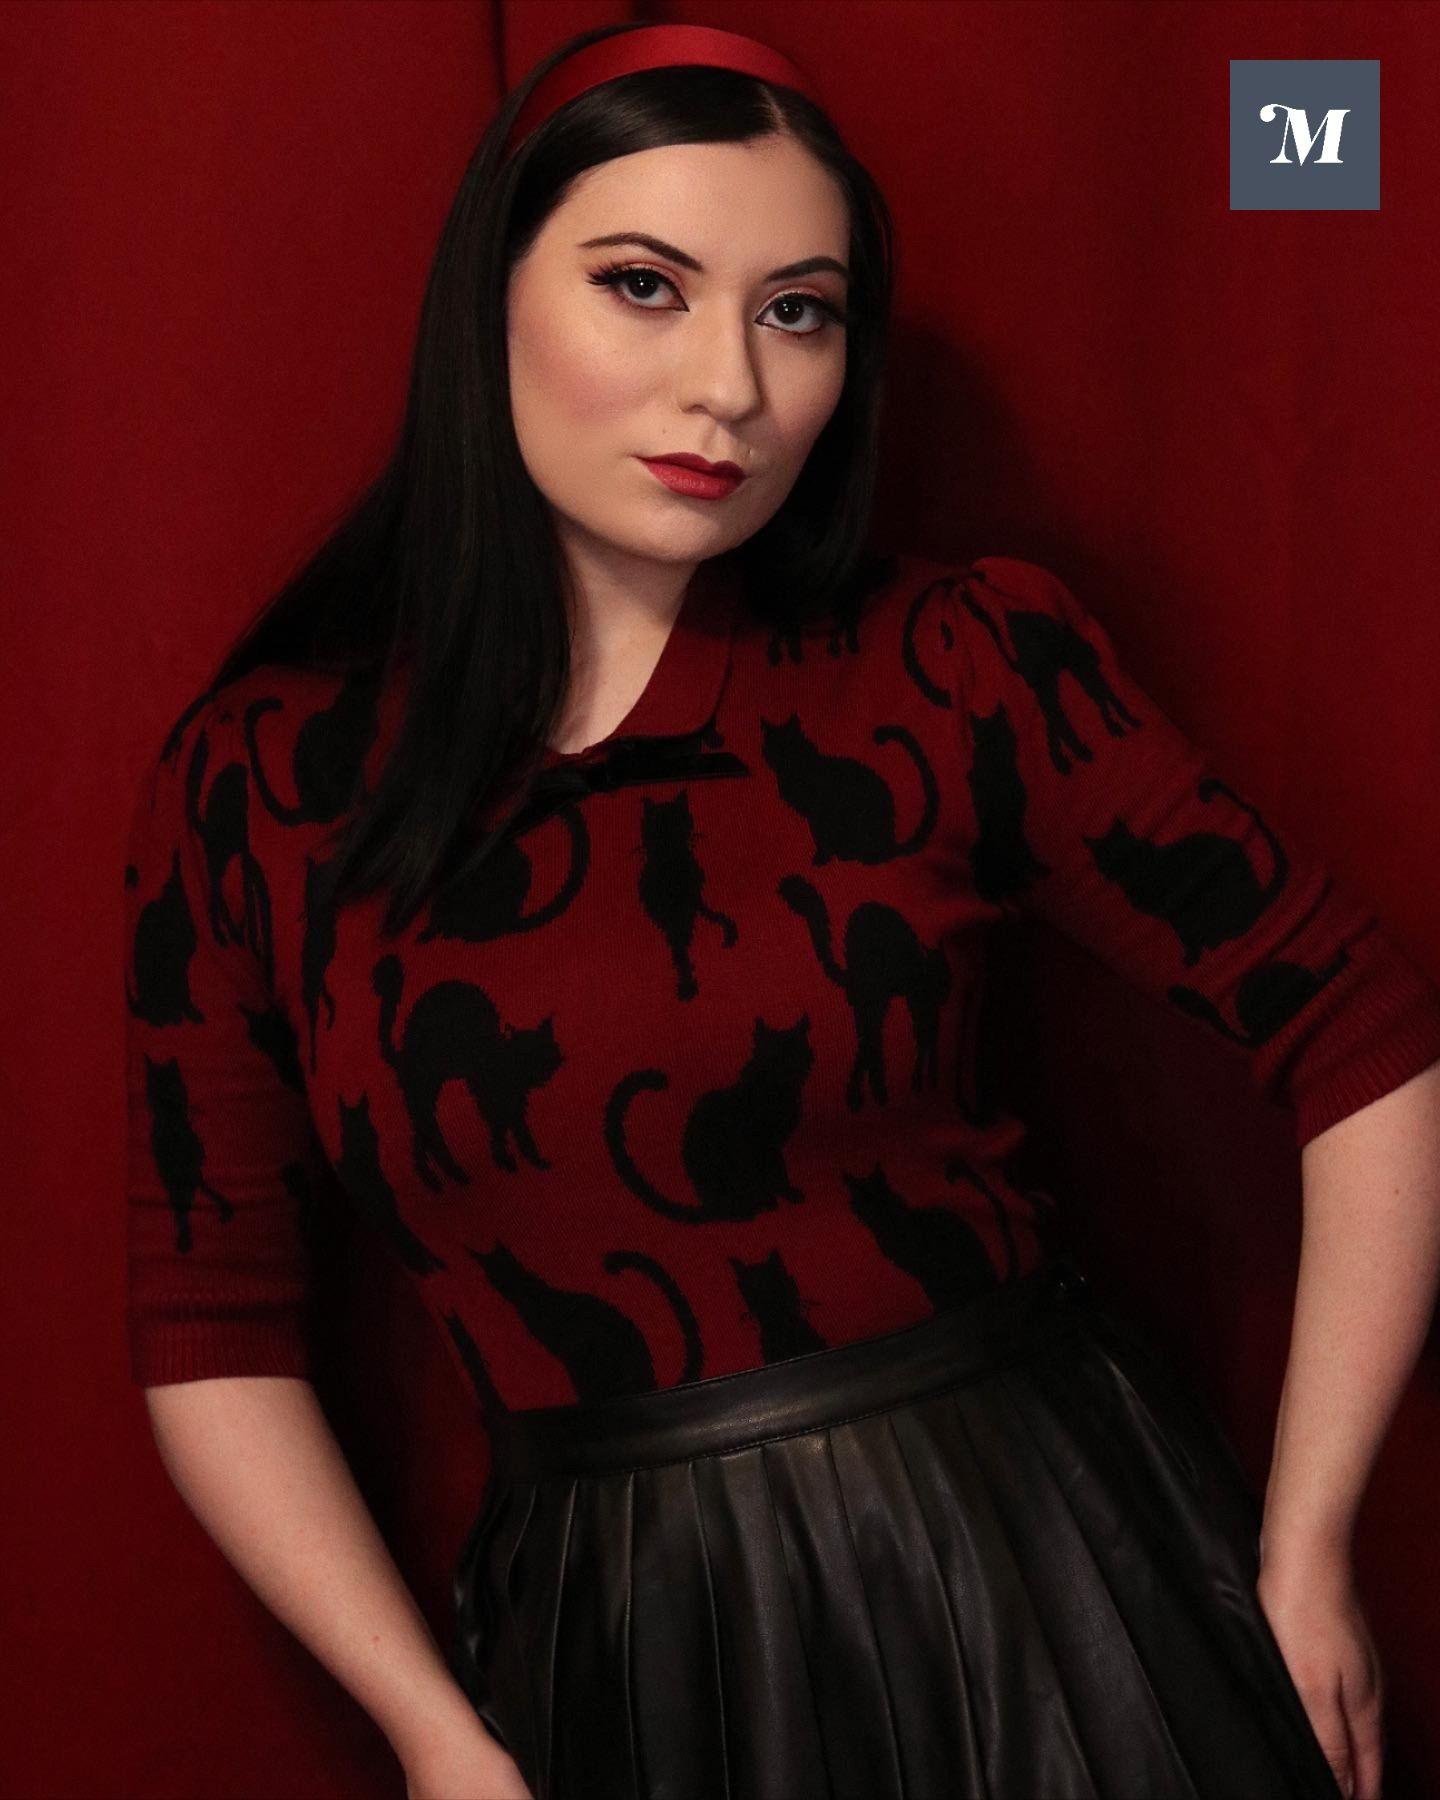 Looking For A Purr Fect New Top We Have Just The Style Stretchy Cozy Wine Red Knit Meows To Life With An Allover Black Cat Print That